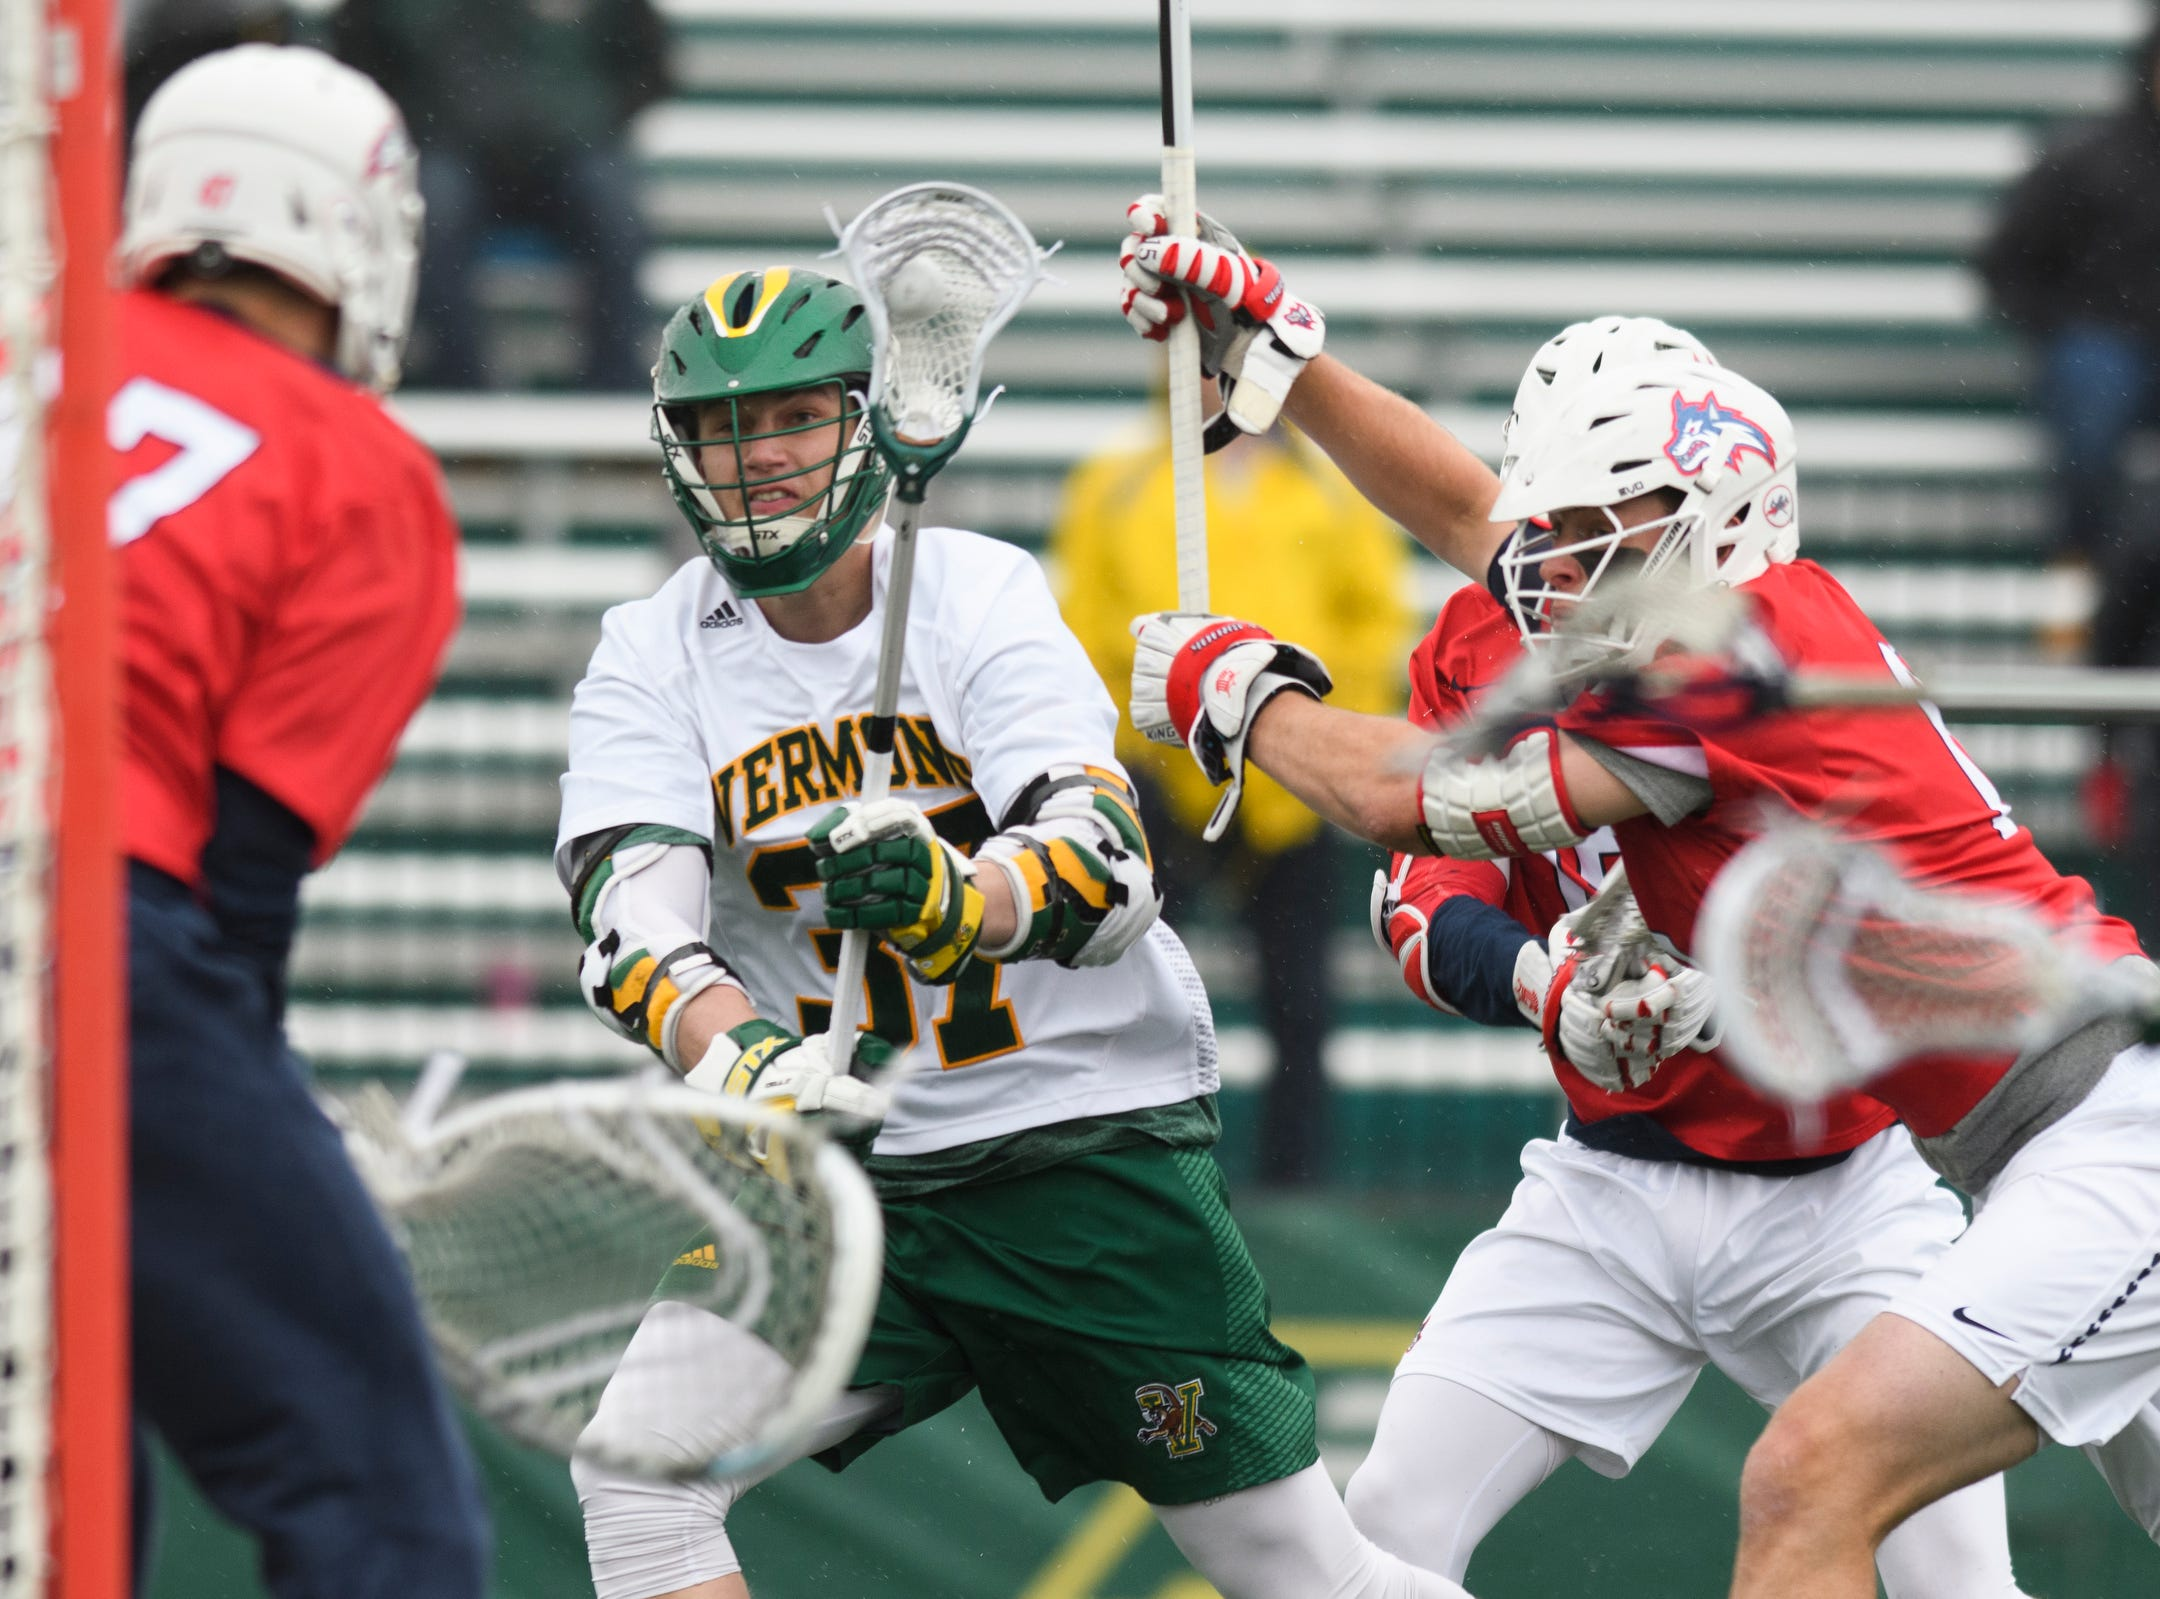 Vermont's Rob Hudson (37) shoots the ball during the men's lacrosse game between the Stony Brook Sea Wolves and the Vermont Catamounts at Virtue Field on Saturday afternoon April 20, 2019 in Burlington, Vermont.